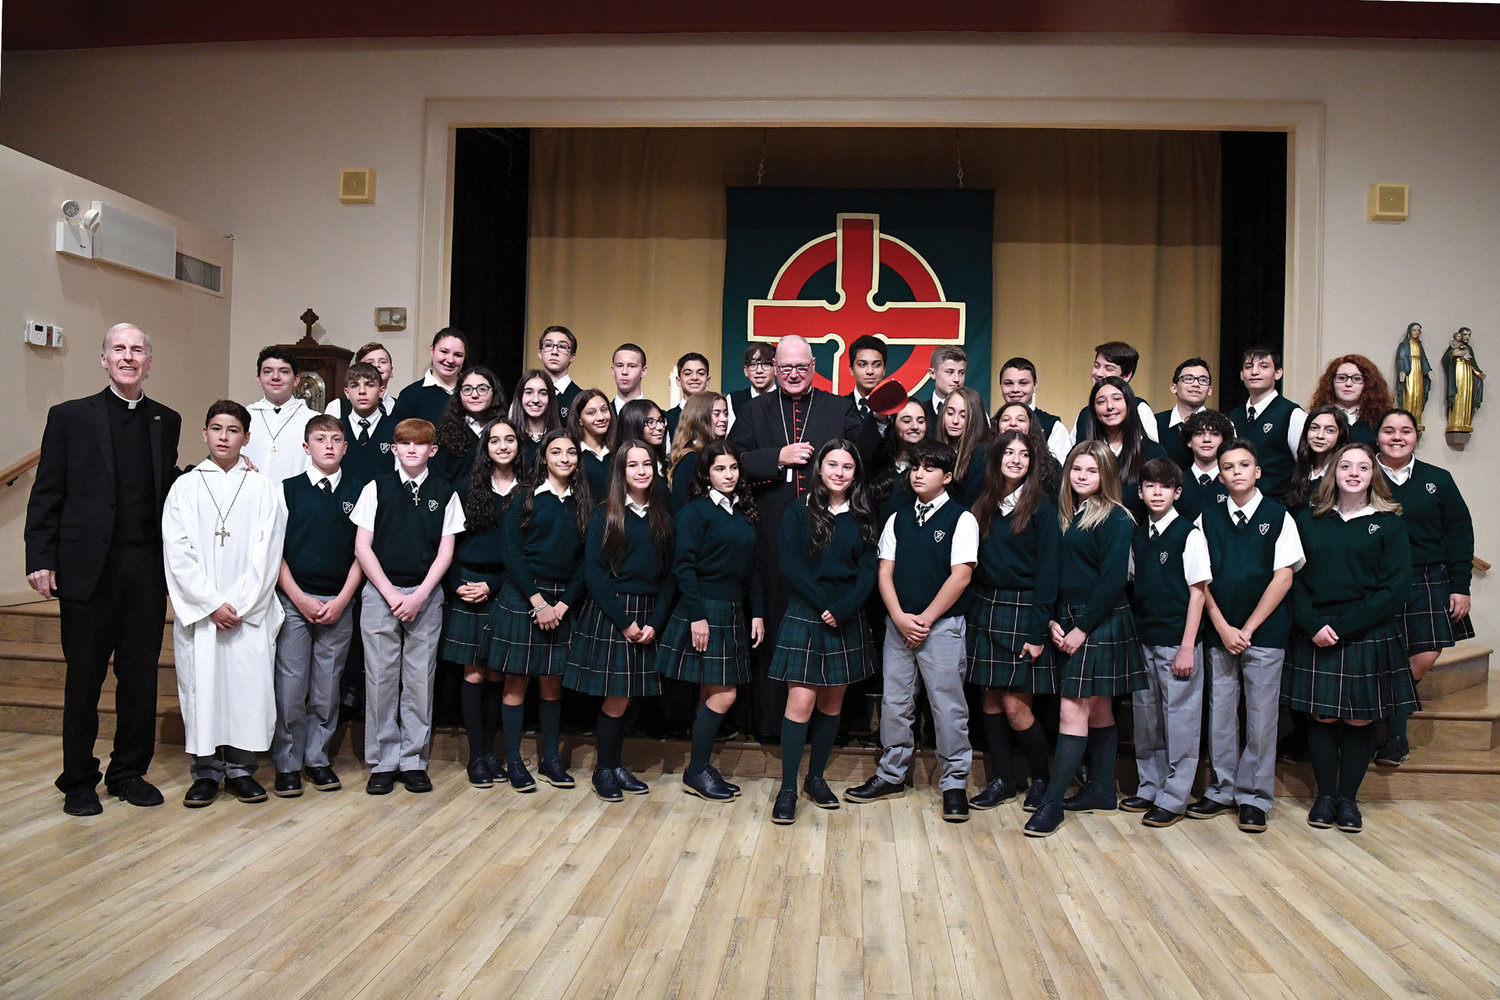 Eighth-graders gather with Msgr. Conway and Cardinal Dolan for a photo after the Mass. The liturgy was attended by the current principal, Vincent Sadowski, and three former principals, as well as teachers, students and other members of the school community. The school was served by the Sisters of St. Dorothy, and members of that congregation were also present.